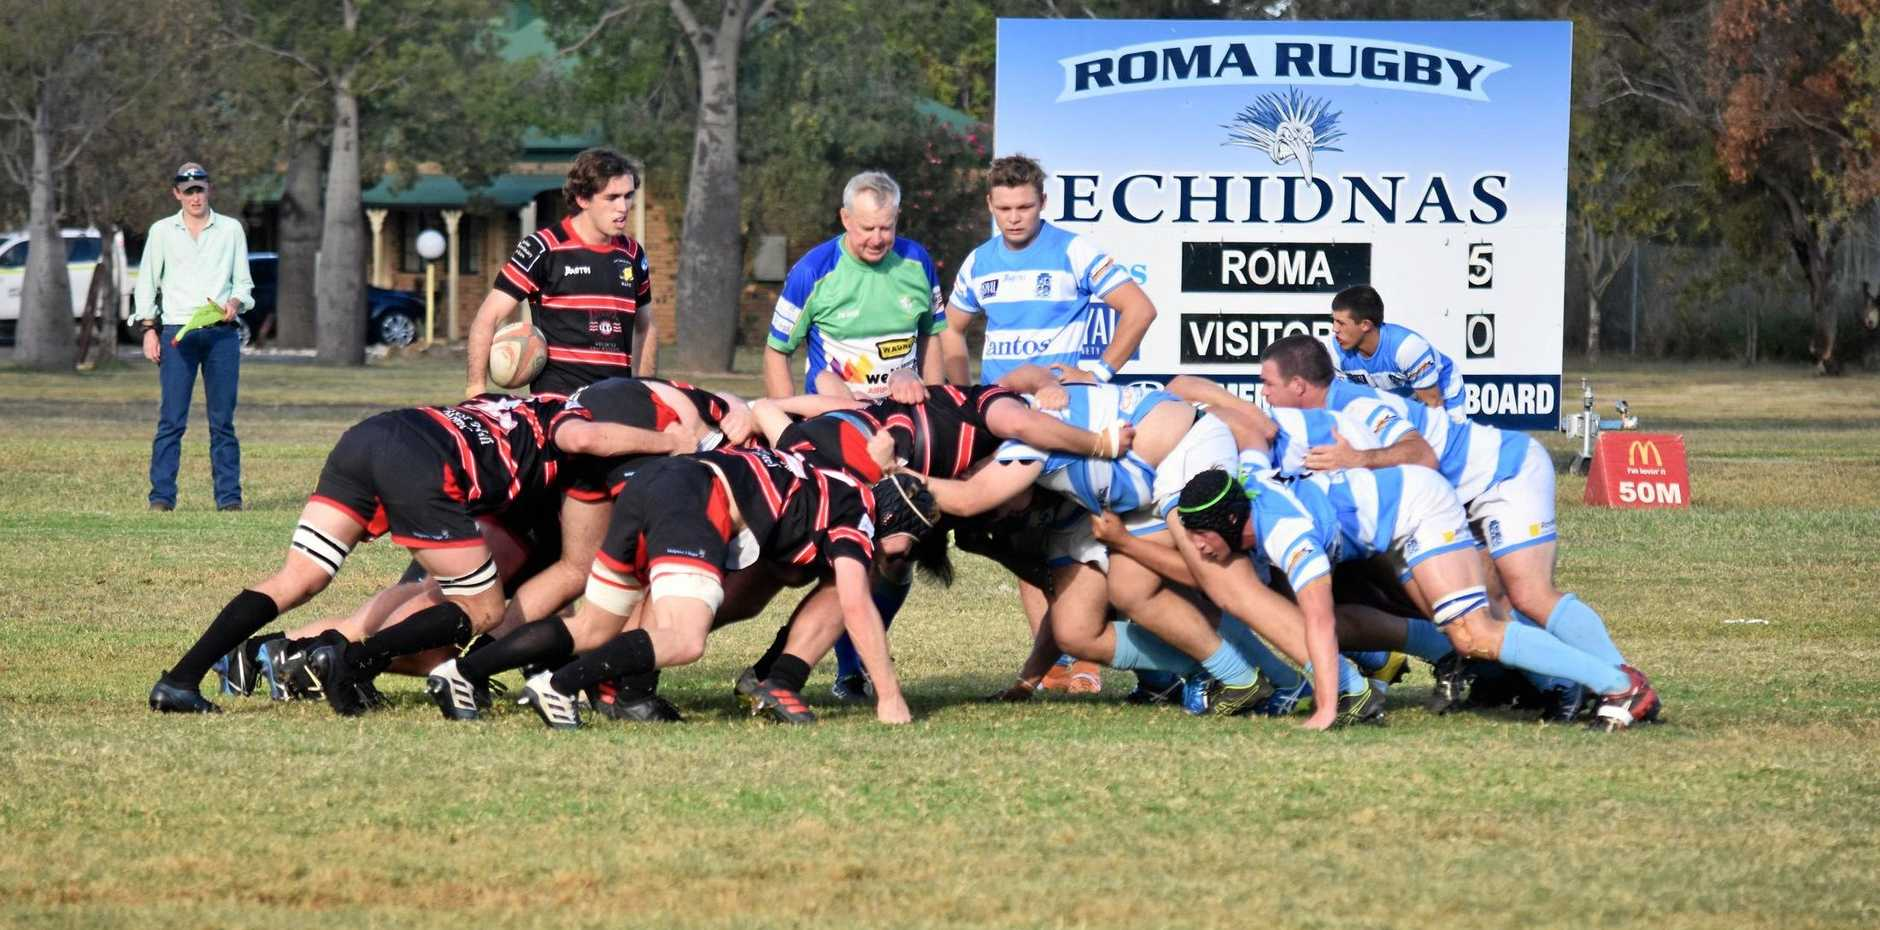 IN ACTION: The University of Queensland Gatton Black Pigs went down in a tough match to a strong-sided Roma Echindas at Gallas Fox Park, Roma.